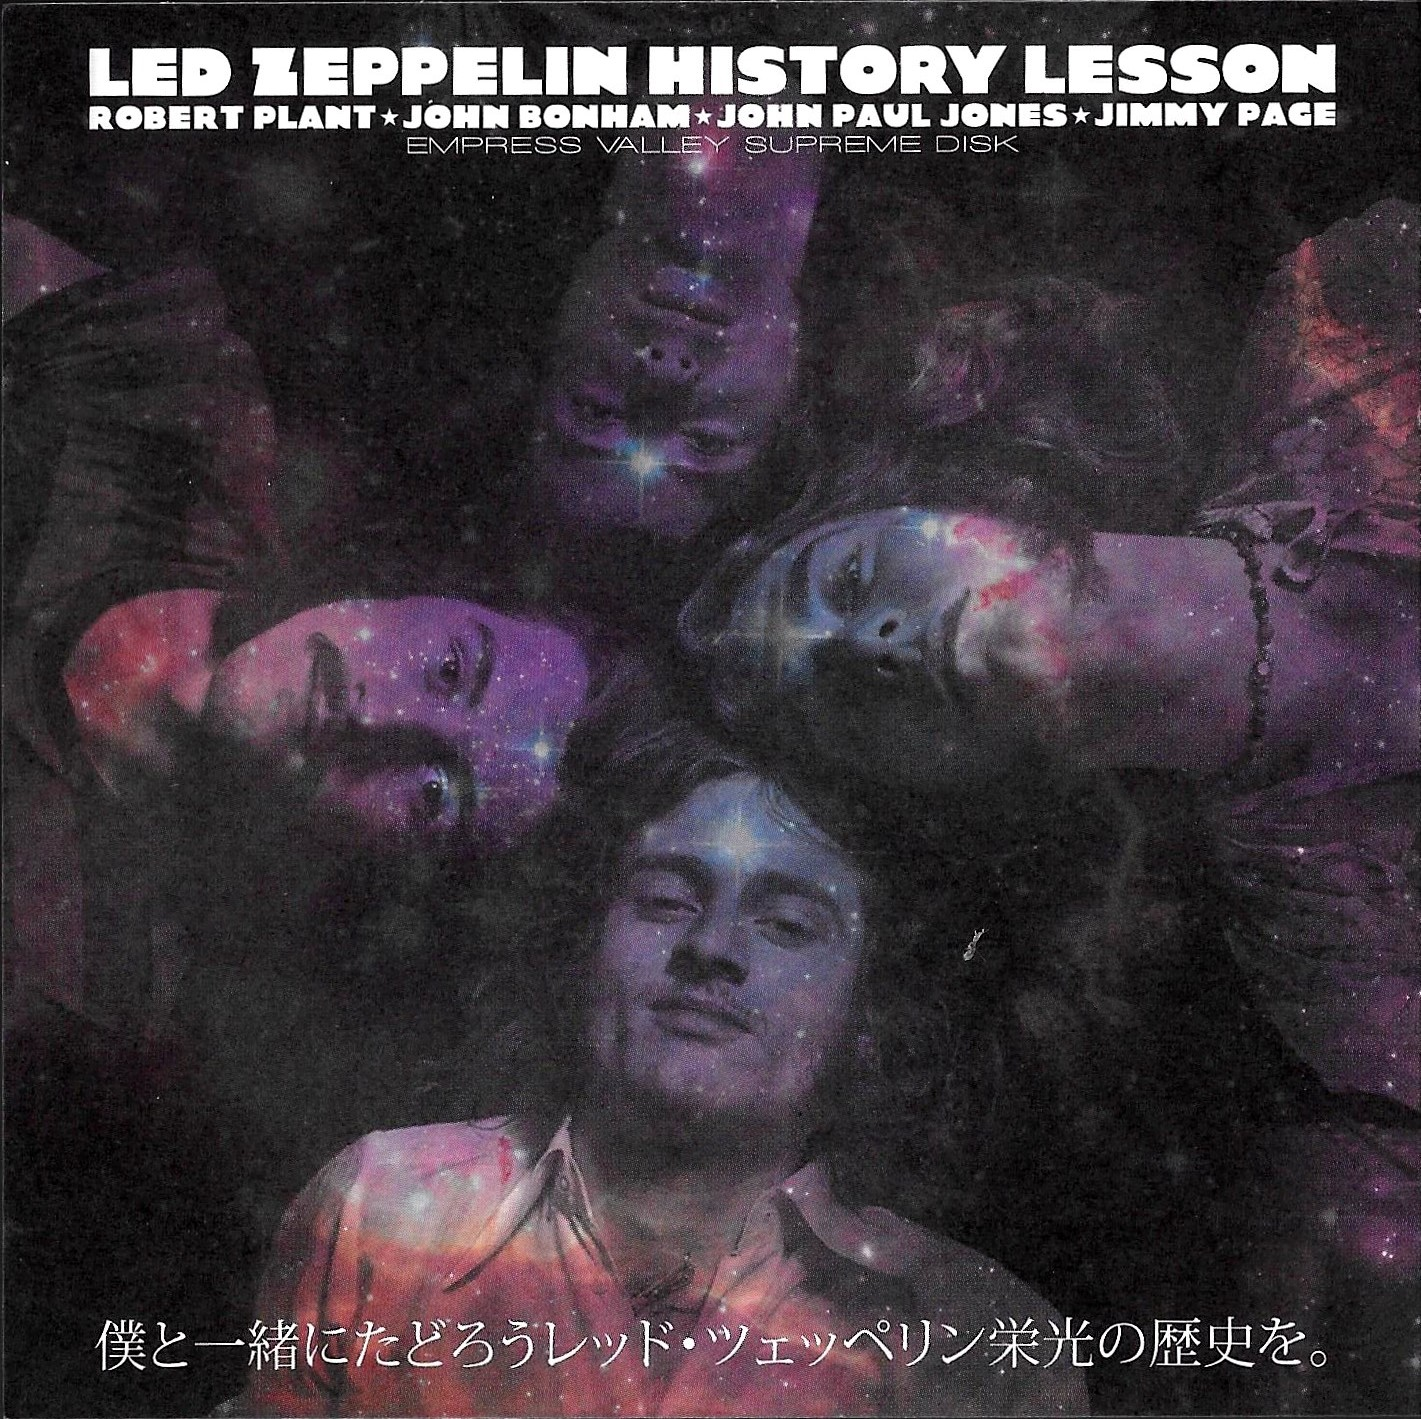 The Rotter's Club: Led Zeppelin History Lesson 7 DVD Box Set (1958